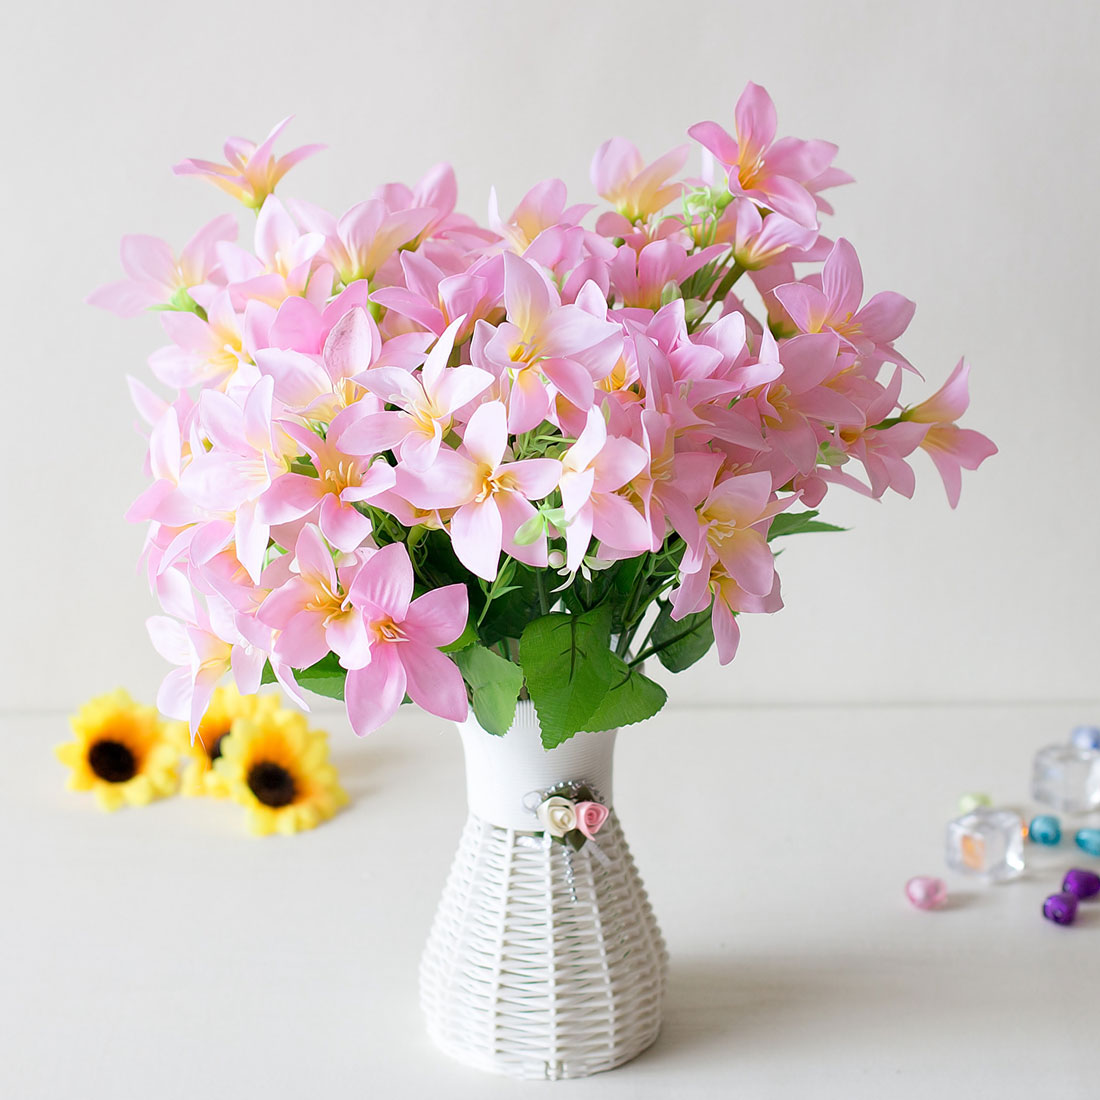 Hot Real Touch Artificial Flowers Wedding Decorative Flowers Calla Lily Silk Fake Flowers Wedding Party Decoration Accessories